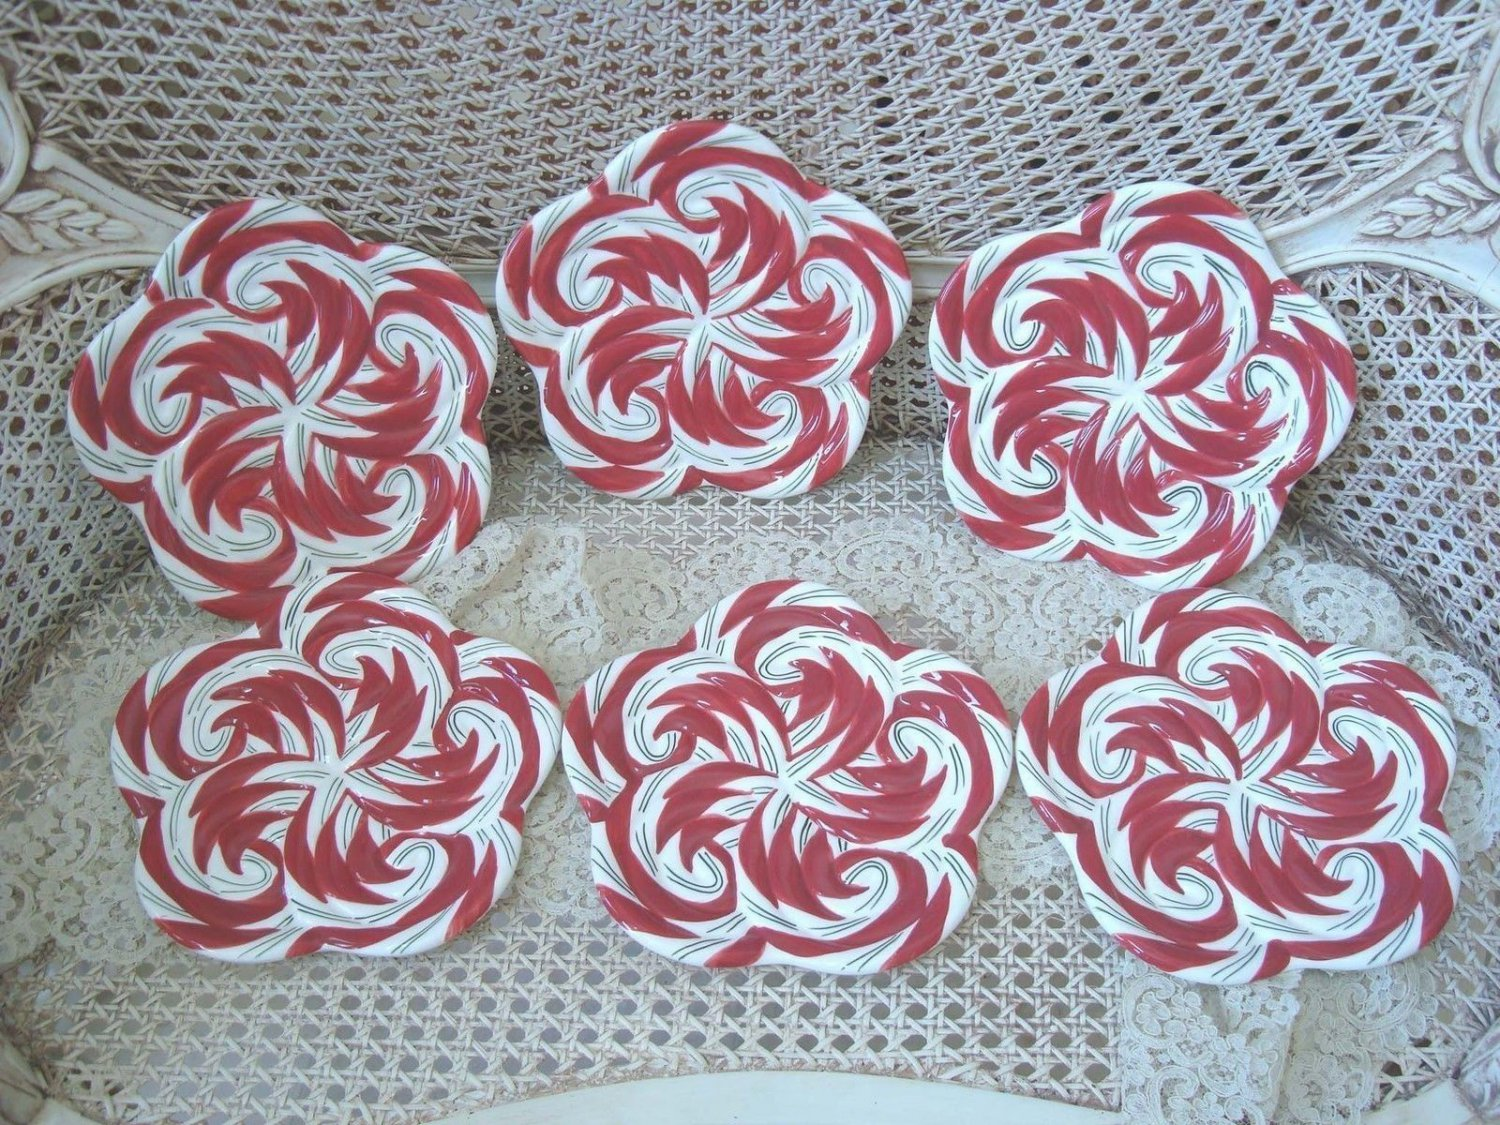 SET OF 6 WHIMSICAL CHRISTMAS PEPPERMINT CANDY CERAMIC PLATES